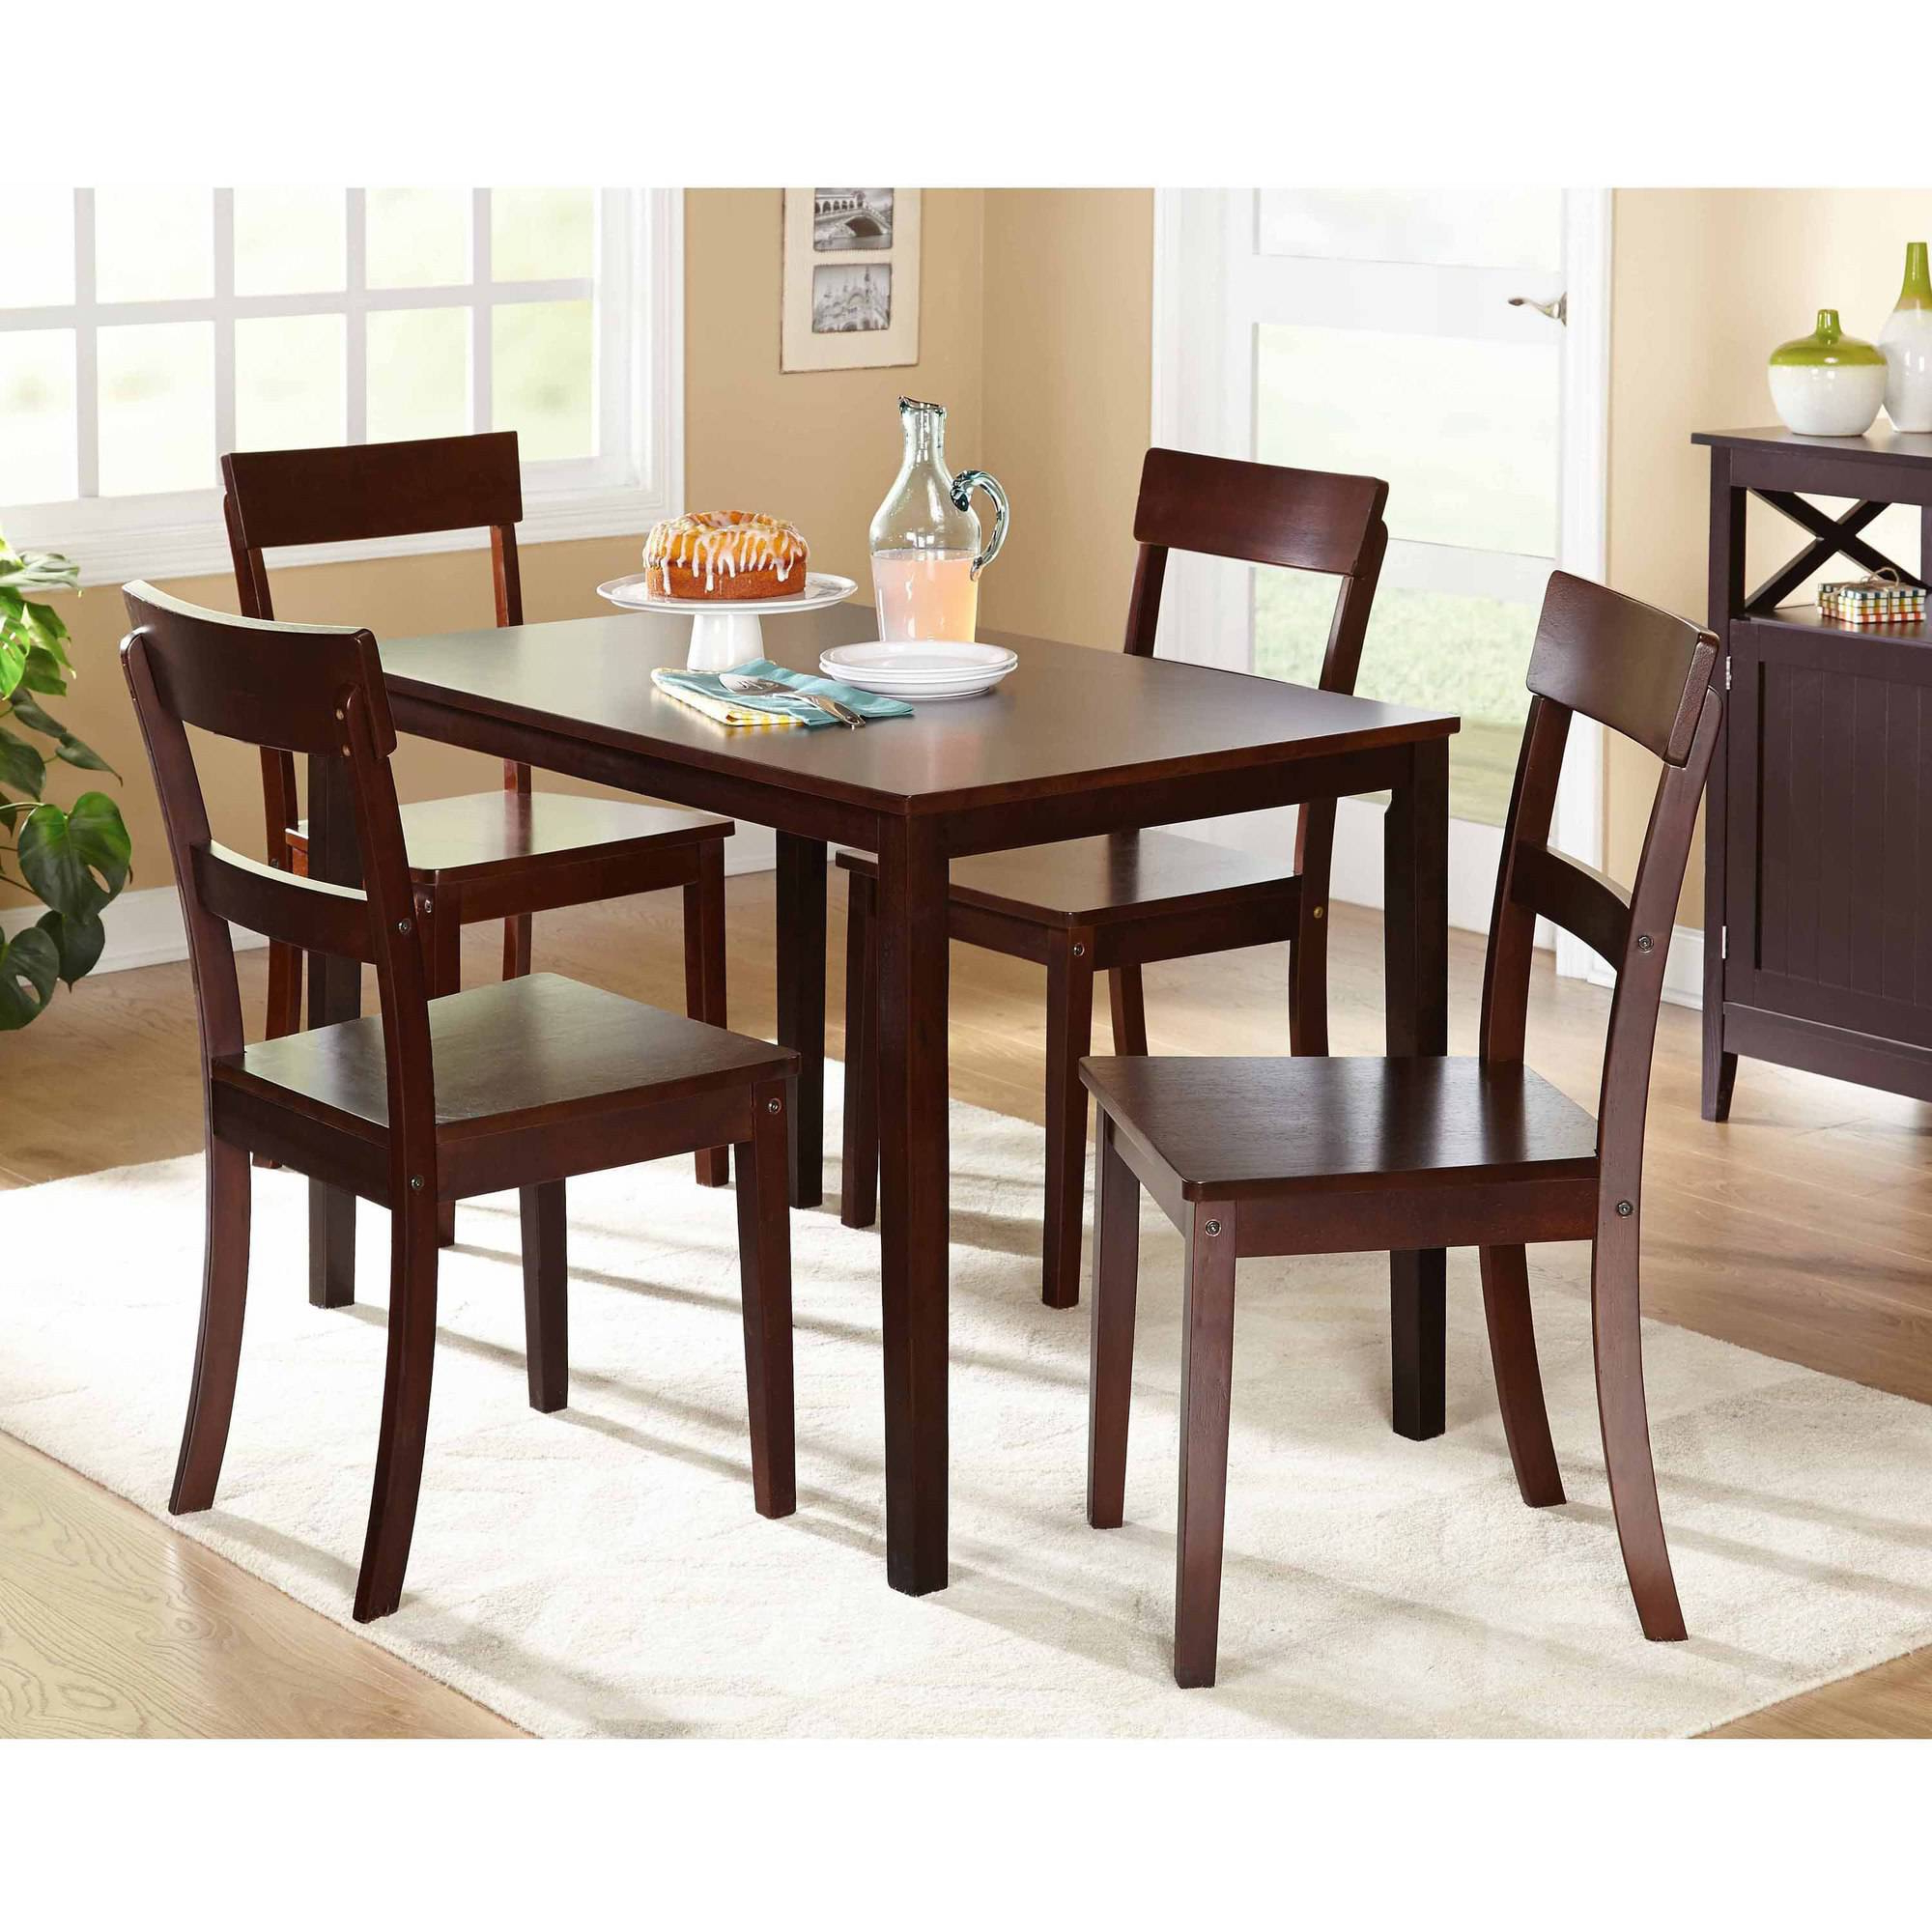 5 Piece Dining Sets within Most Recently Released Beverly 5-Piece Dining Set, Multiple Finishes - Walmart